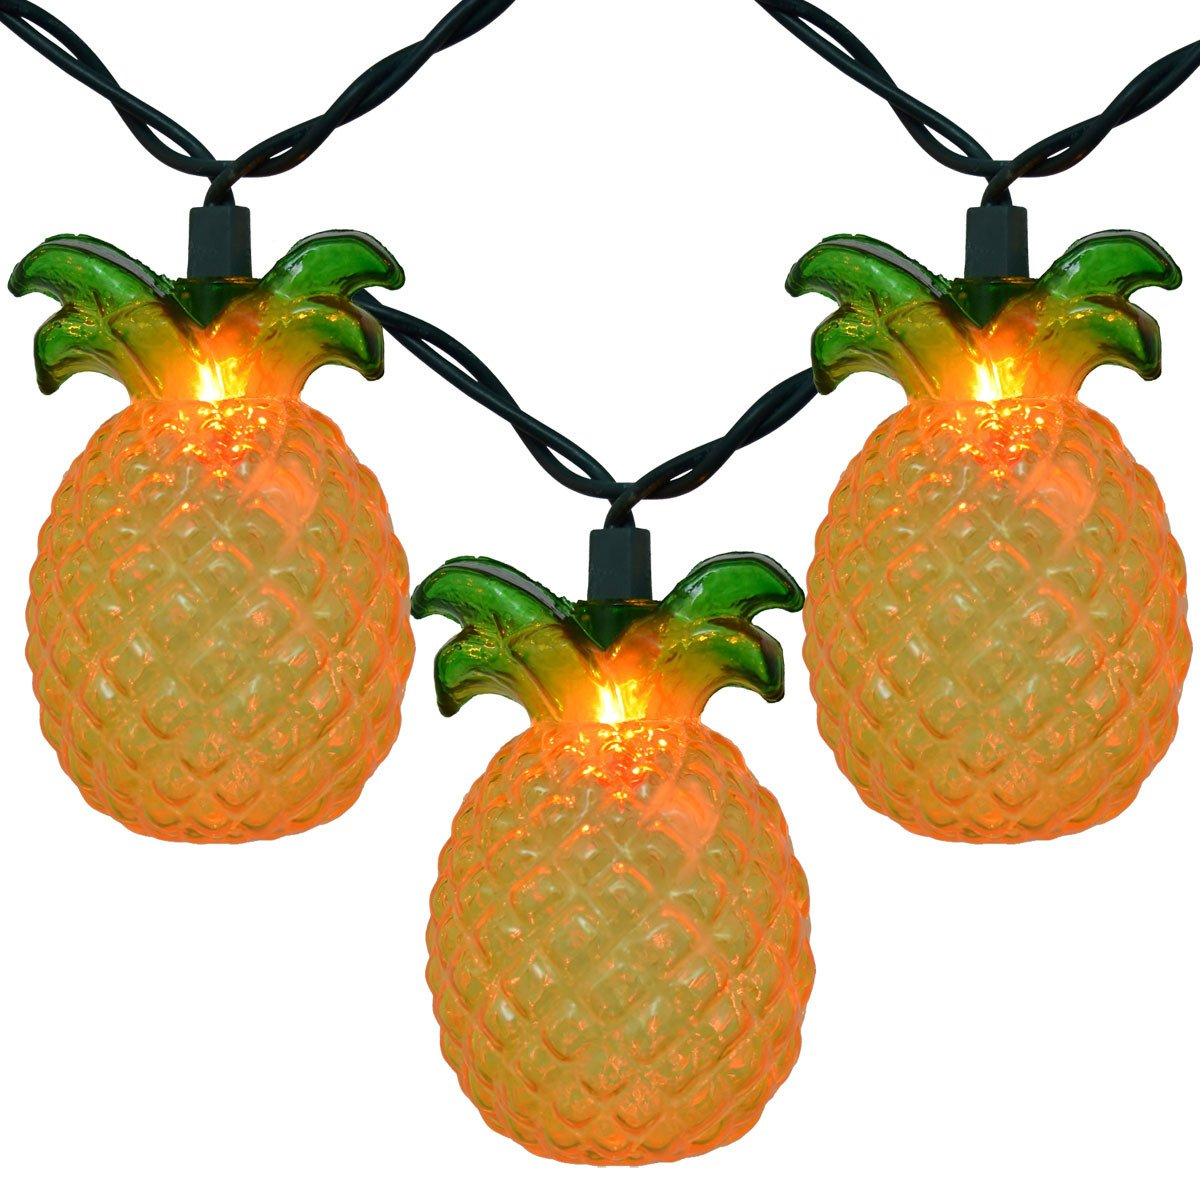 Designer Pineapple Shaped Indoor Outdoor String Lights - Boho Bohemian Decor